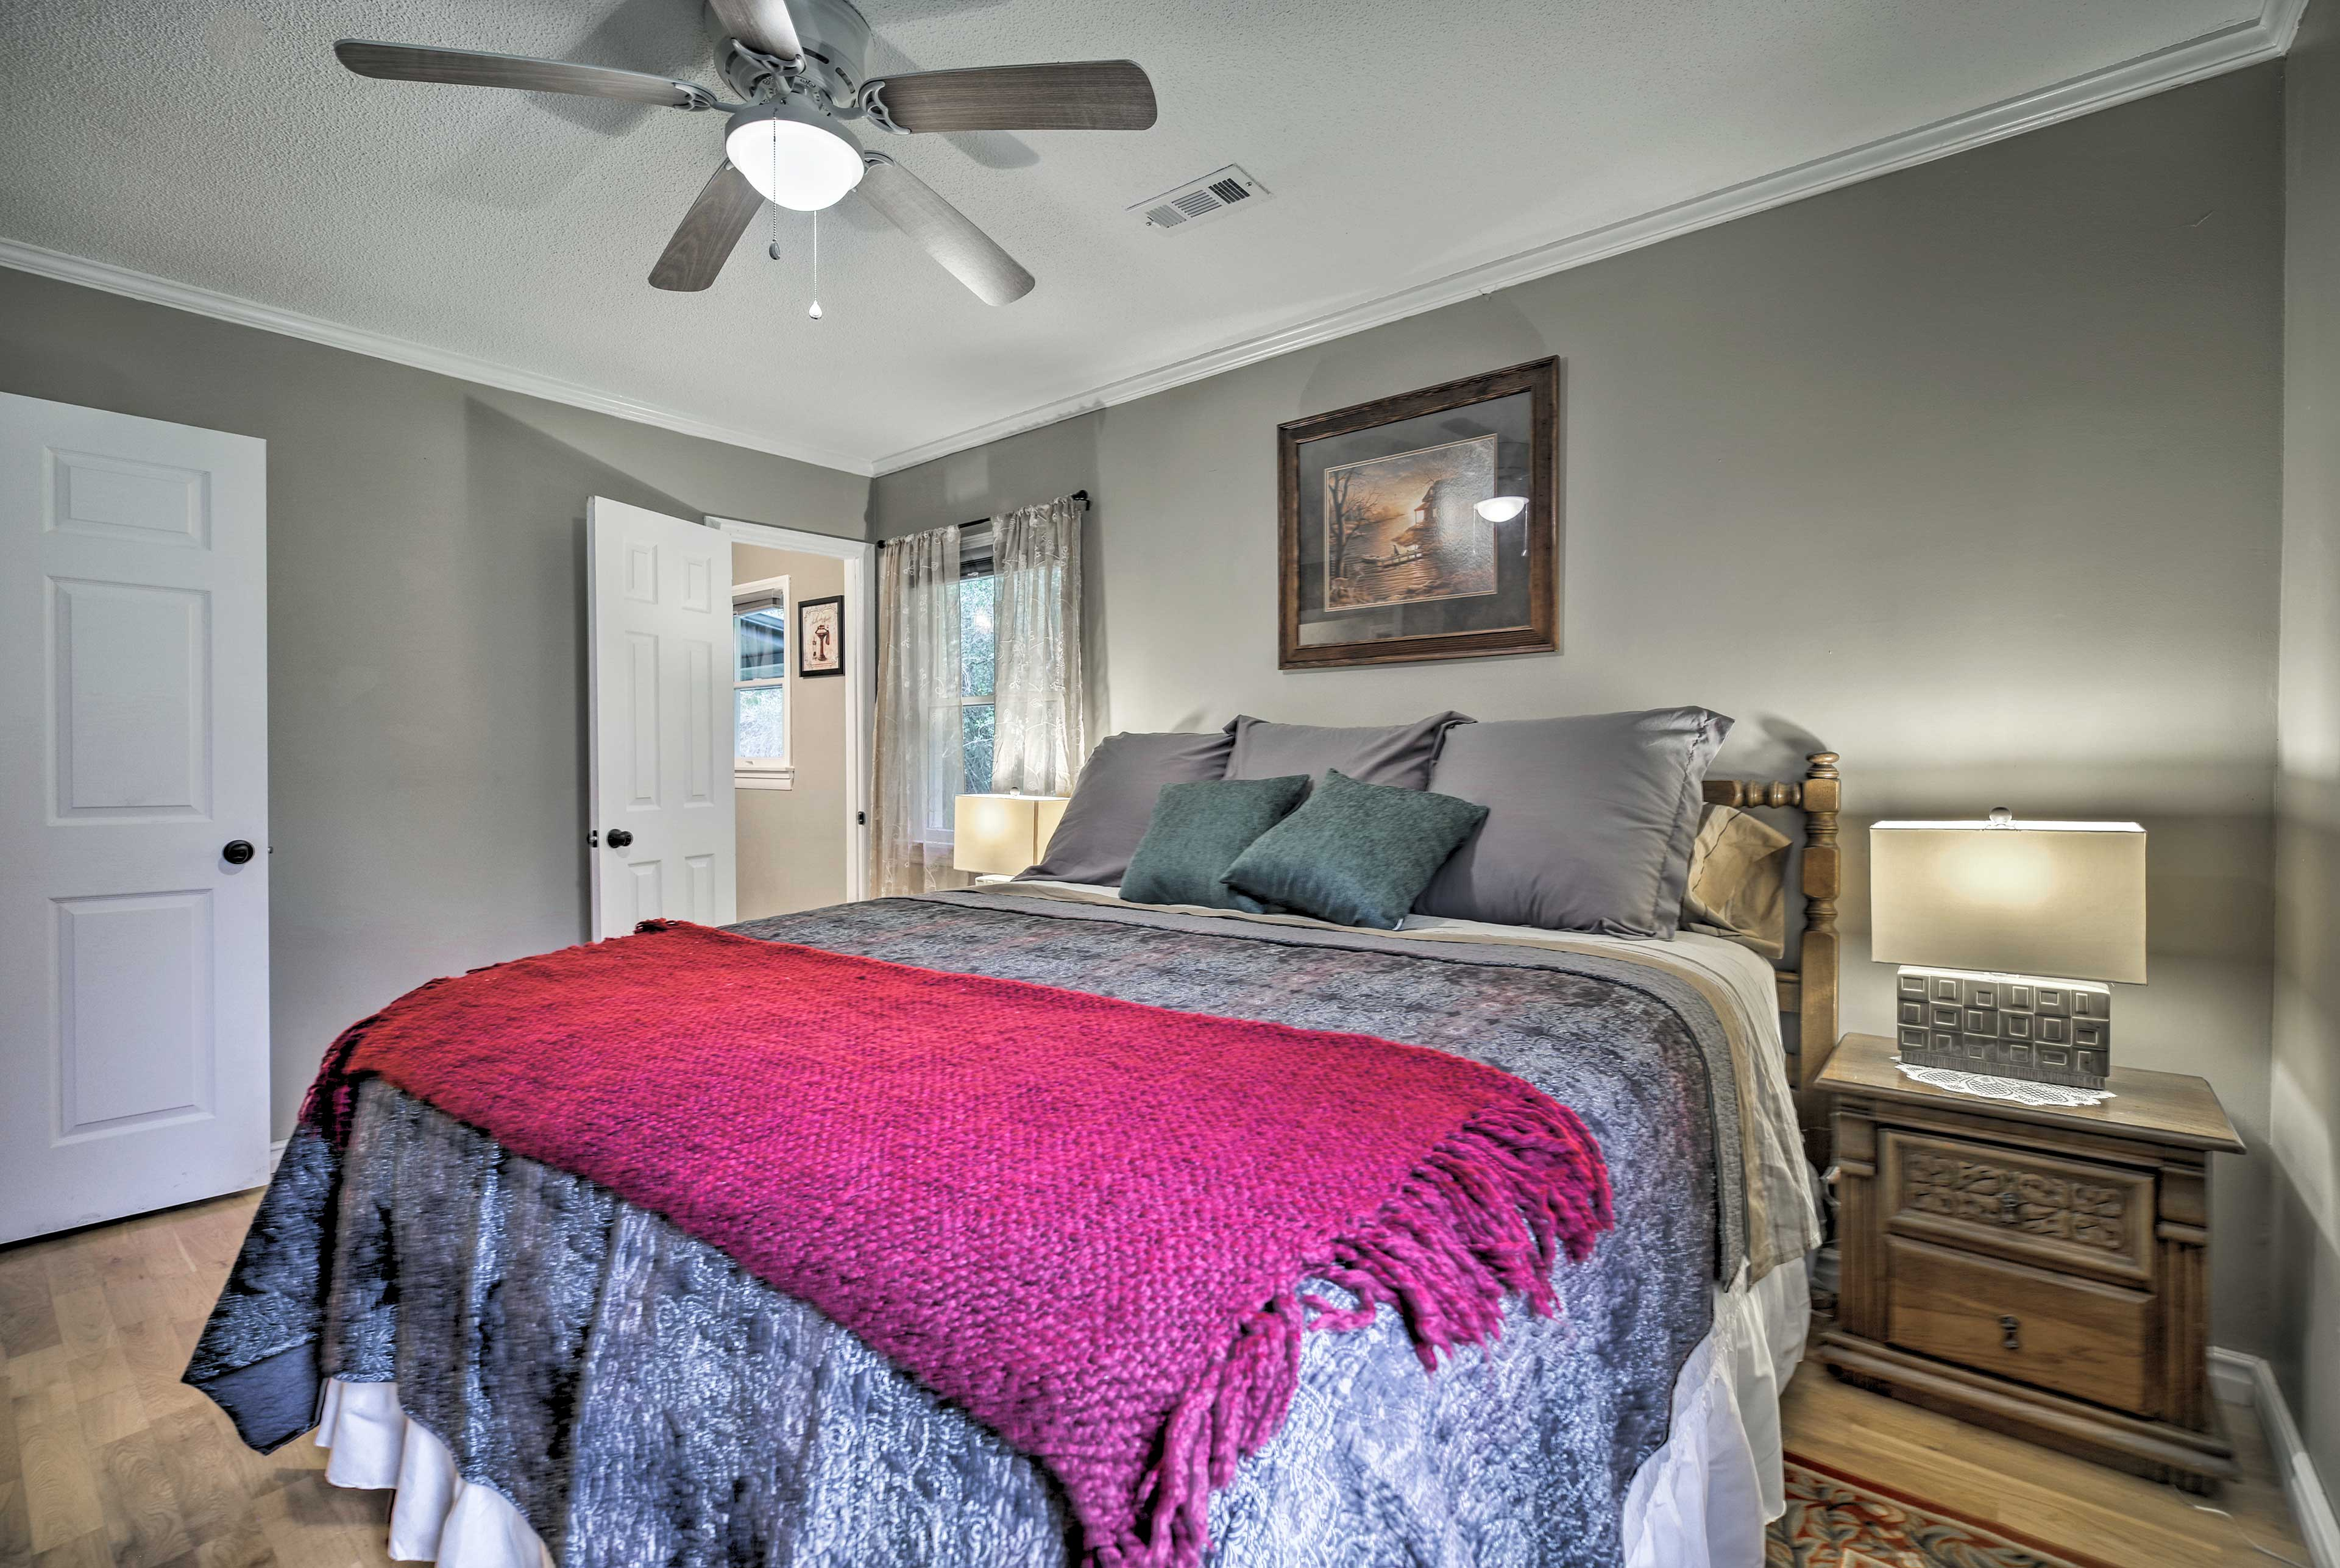 With a king bed, this room is endlessly luxurious.